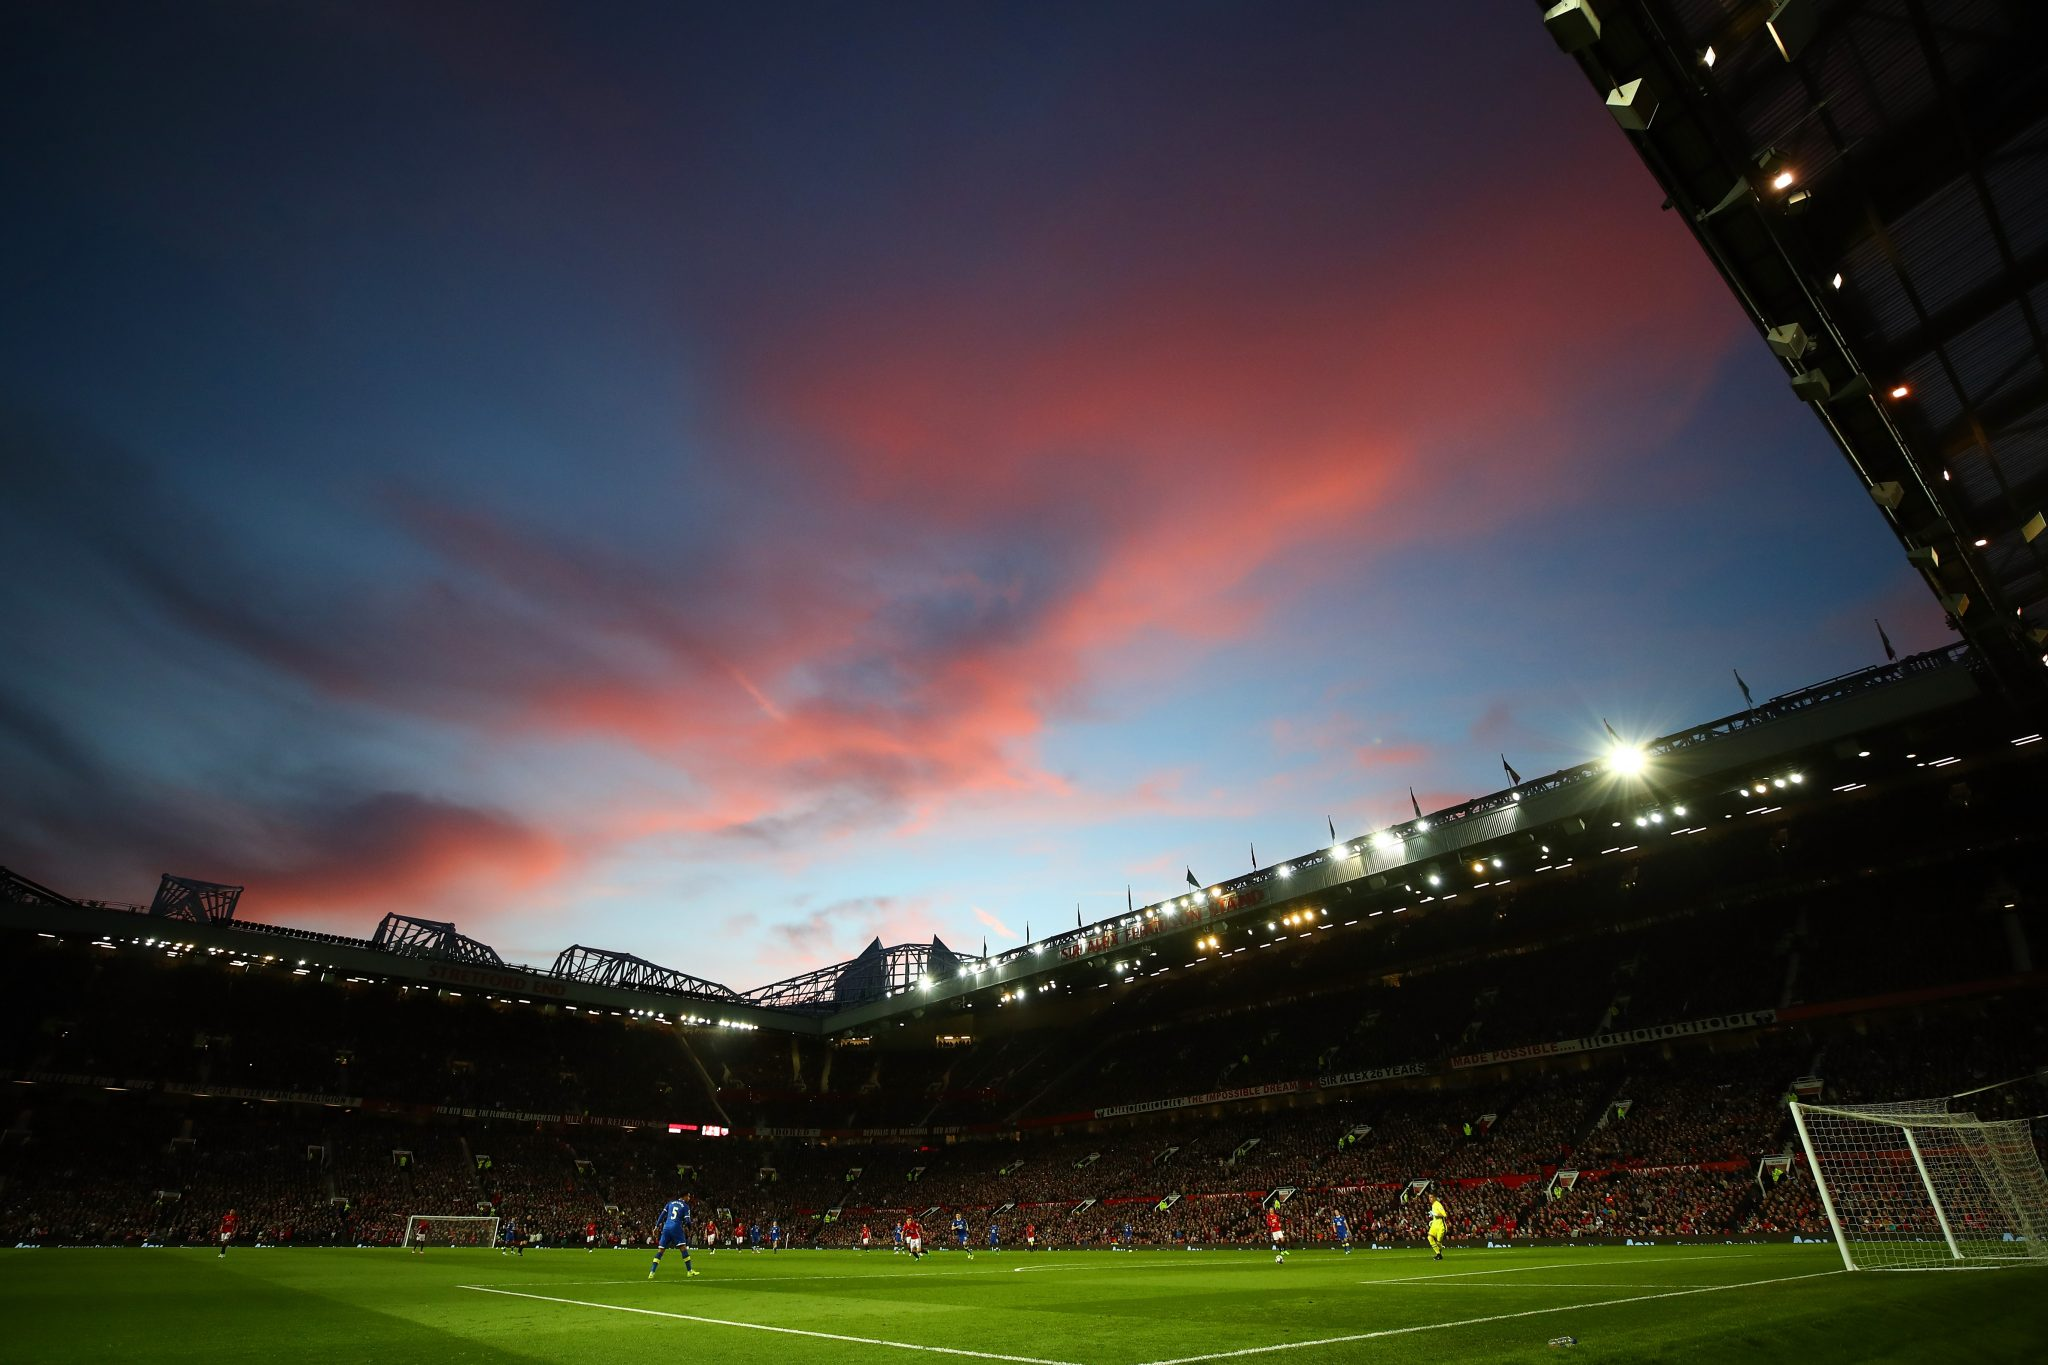 Manchester United Subject To Cyber Attack, Hackers Demanding Millions Of Pounds